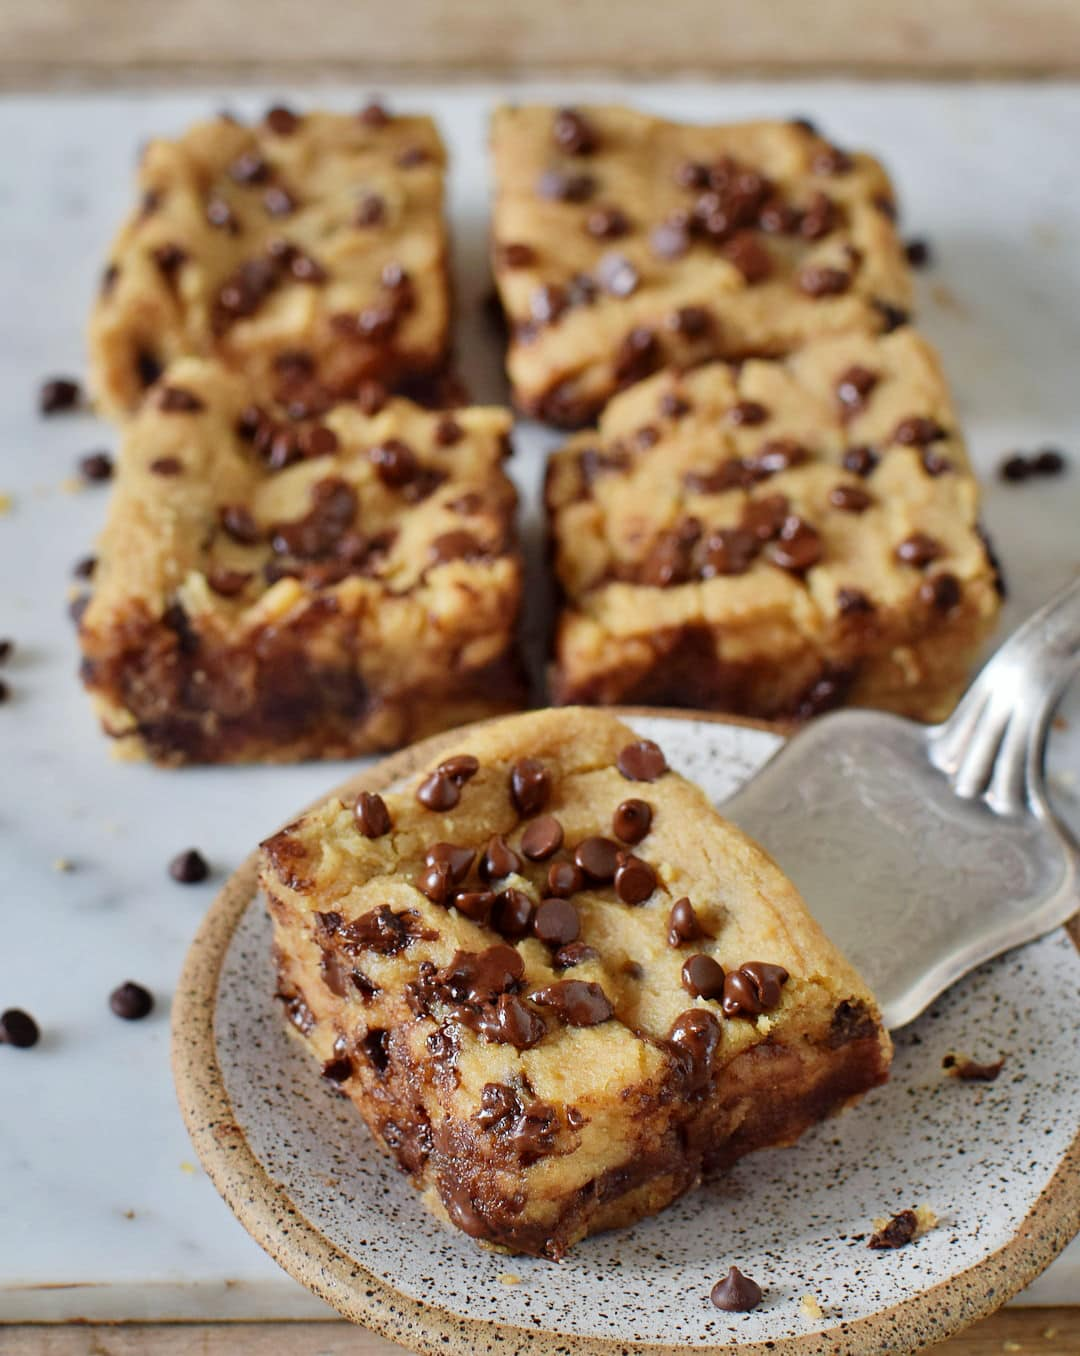 gluten-free vegan chocolate chip blondies on a plate